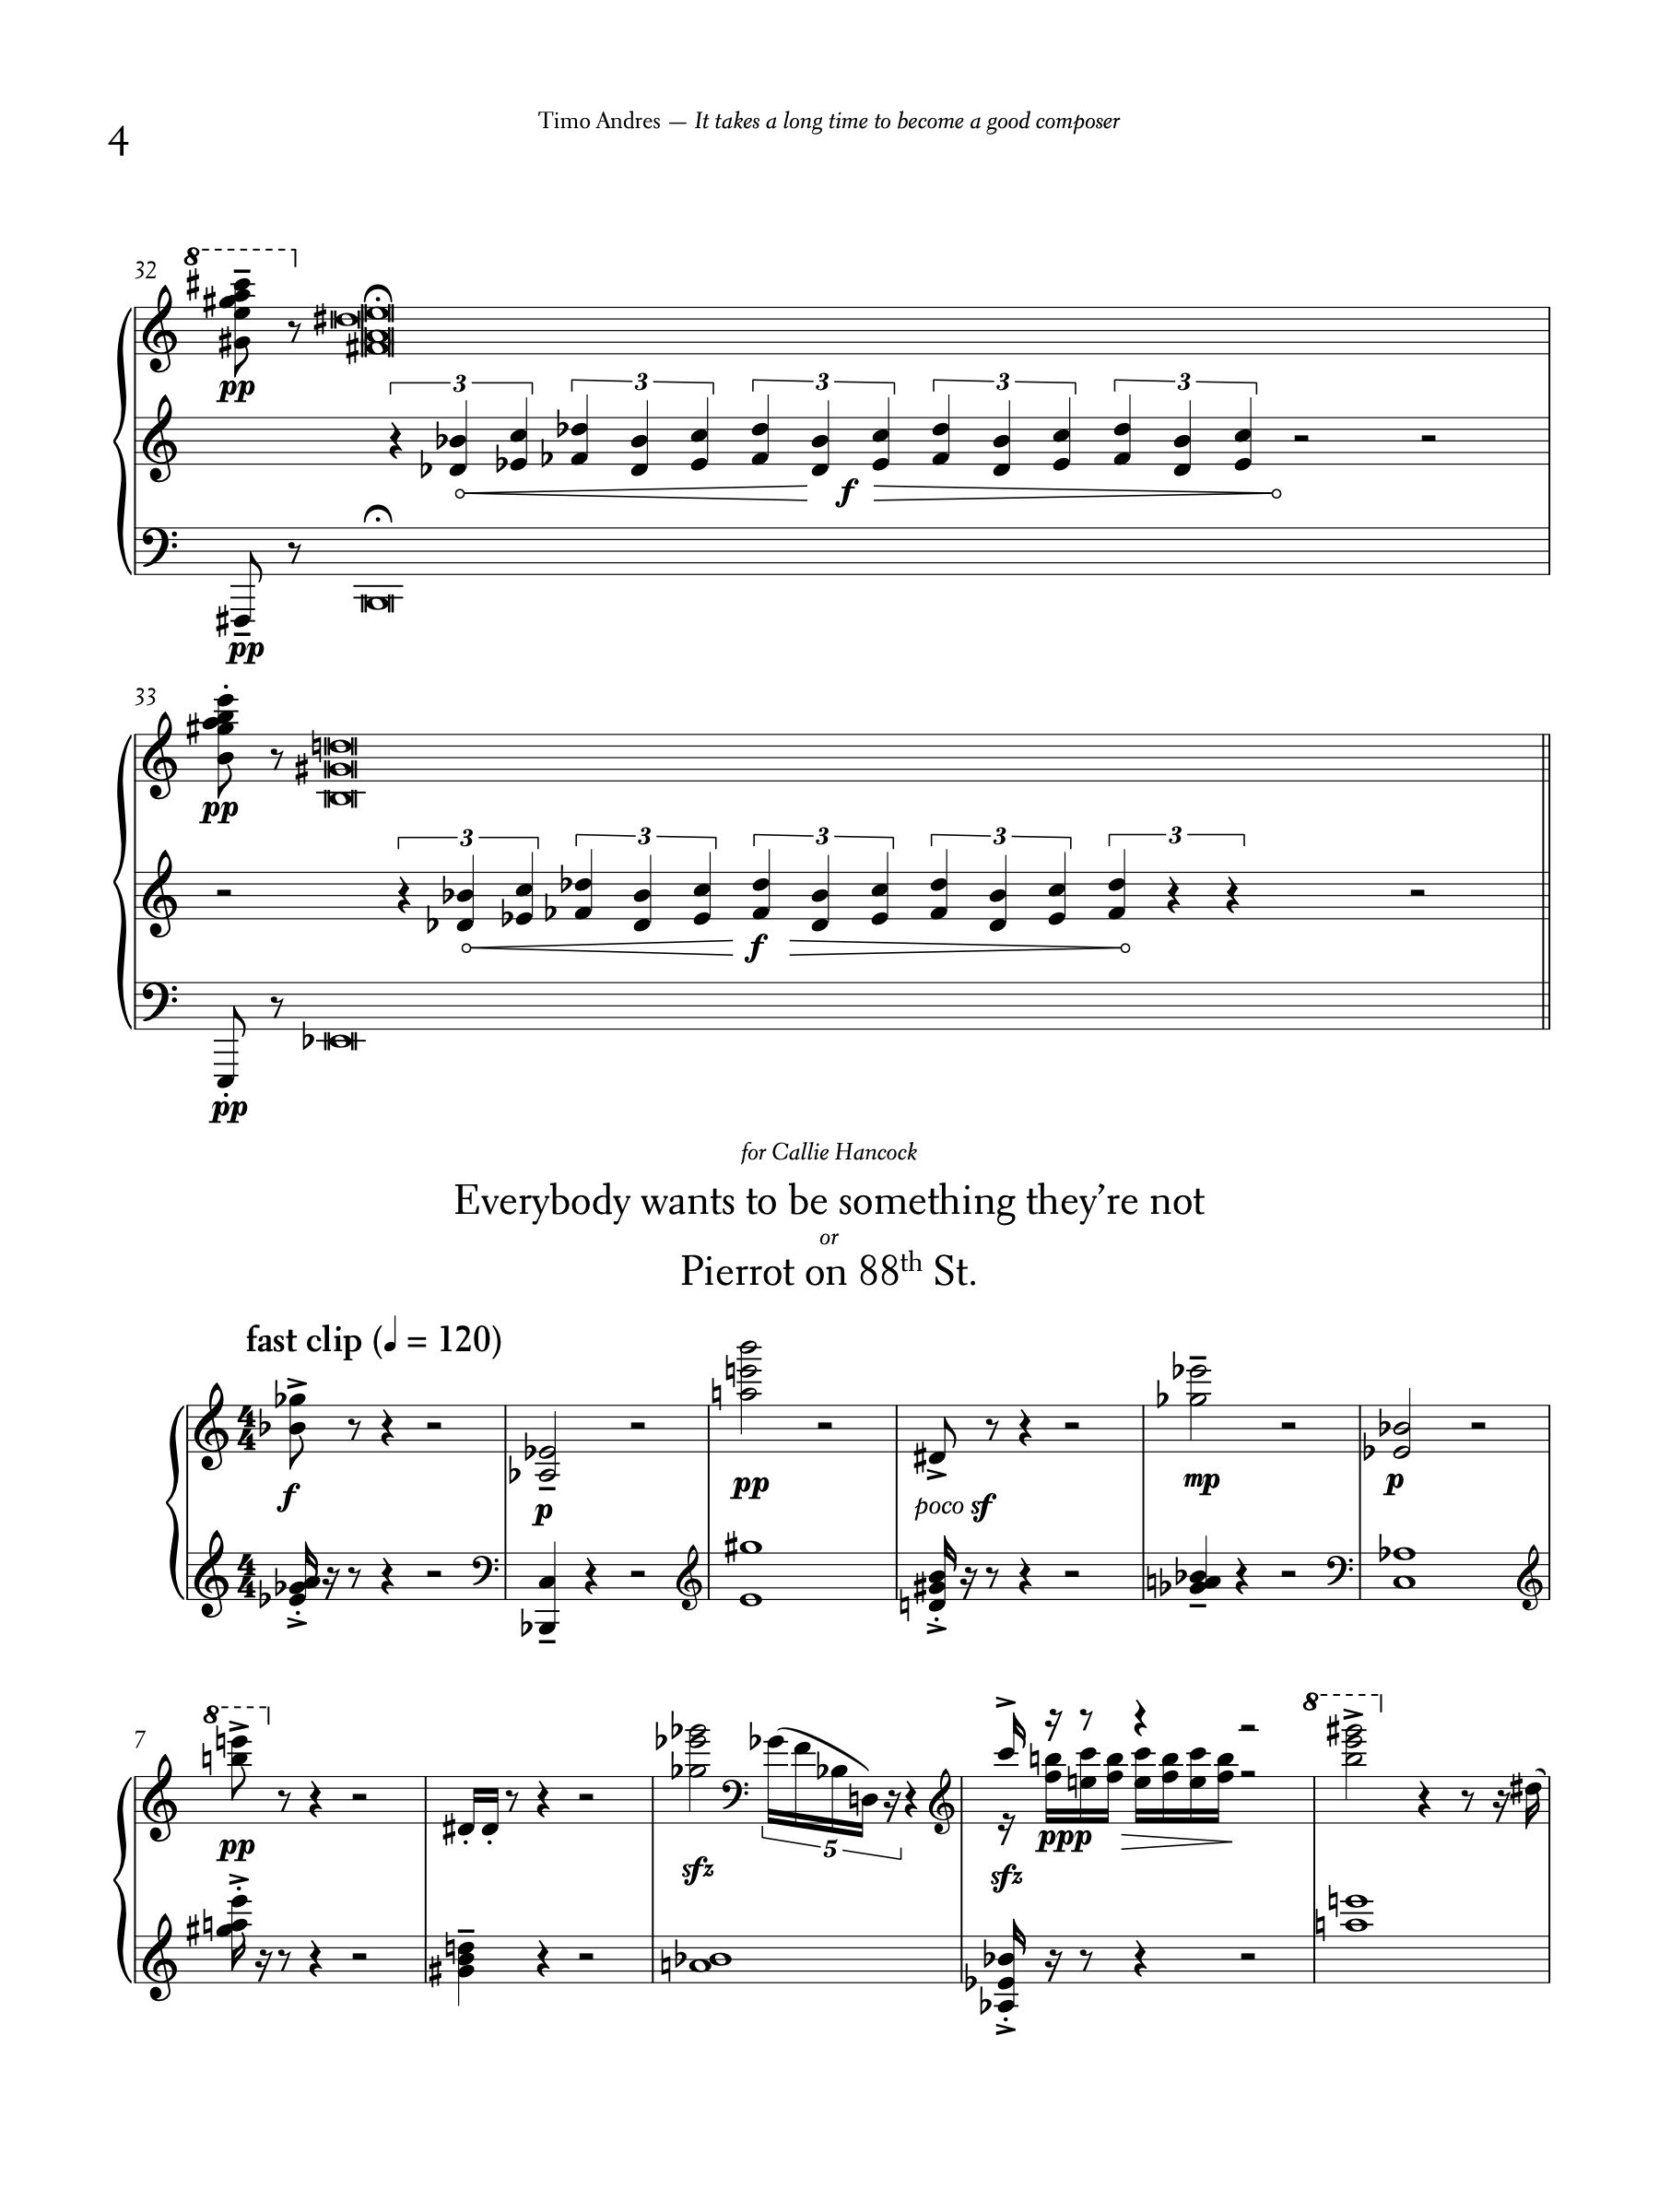 It take a long time to become a good composer, p. 2